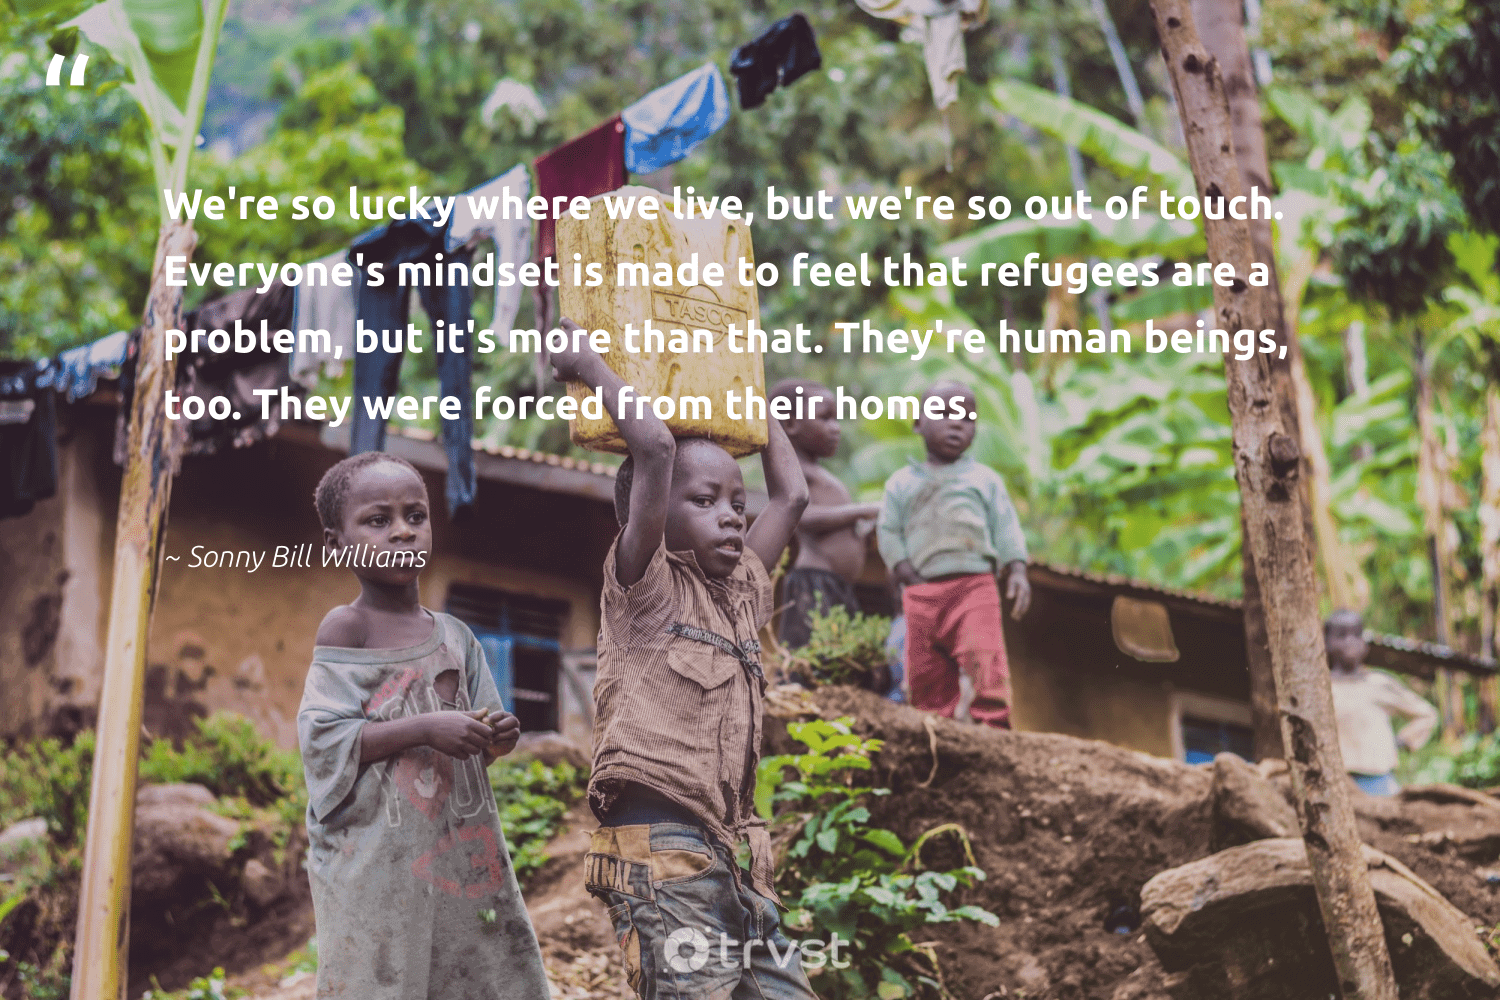 """""""We're so lucky where we live, but we're so out of touch. Everyone's mindset is made to feel that refugees are a problem, but it's more than that. They're human beings, too. They were forced from their homes.""""  - Sonny Bill Williams #trvst #quotes #refugees #mindset #syria #weareallone #equalopportunity #changetheworld #refugee #makeadifference #inclusion #planetearthfirst"""